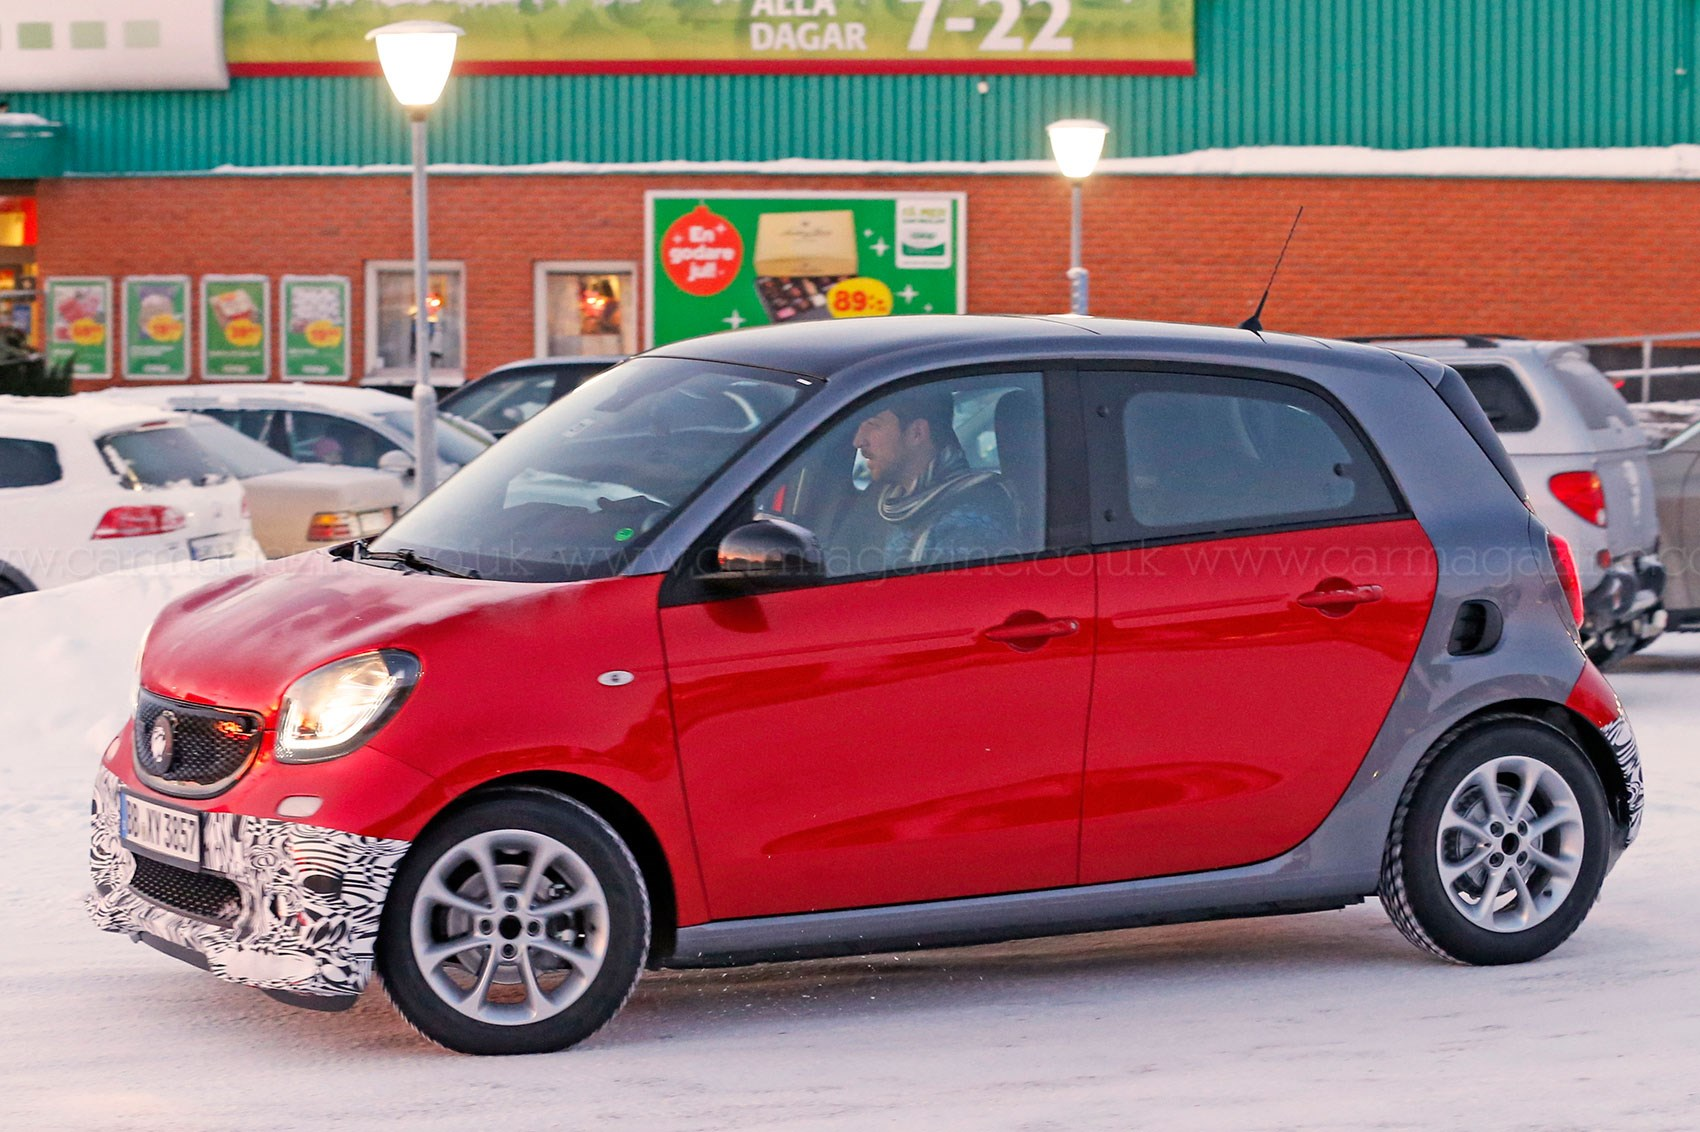 more power for forfour go faster brabus smart forfour 2016 spied by car magazine. Black Bedroom Furniture Sets. Home Design Ideas